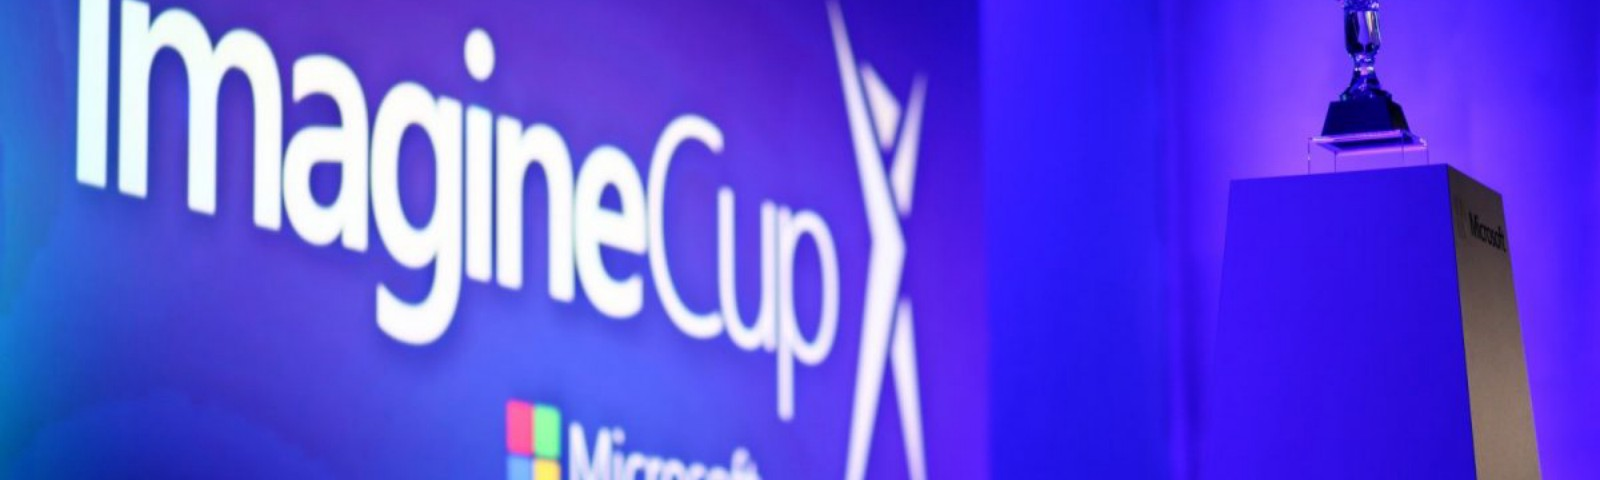 Tech Trends Imagine Cup Microsoft